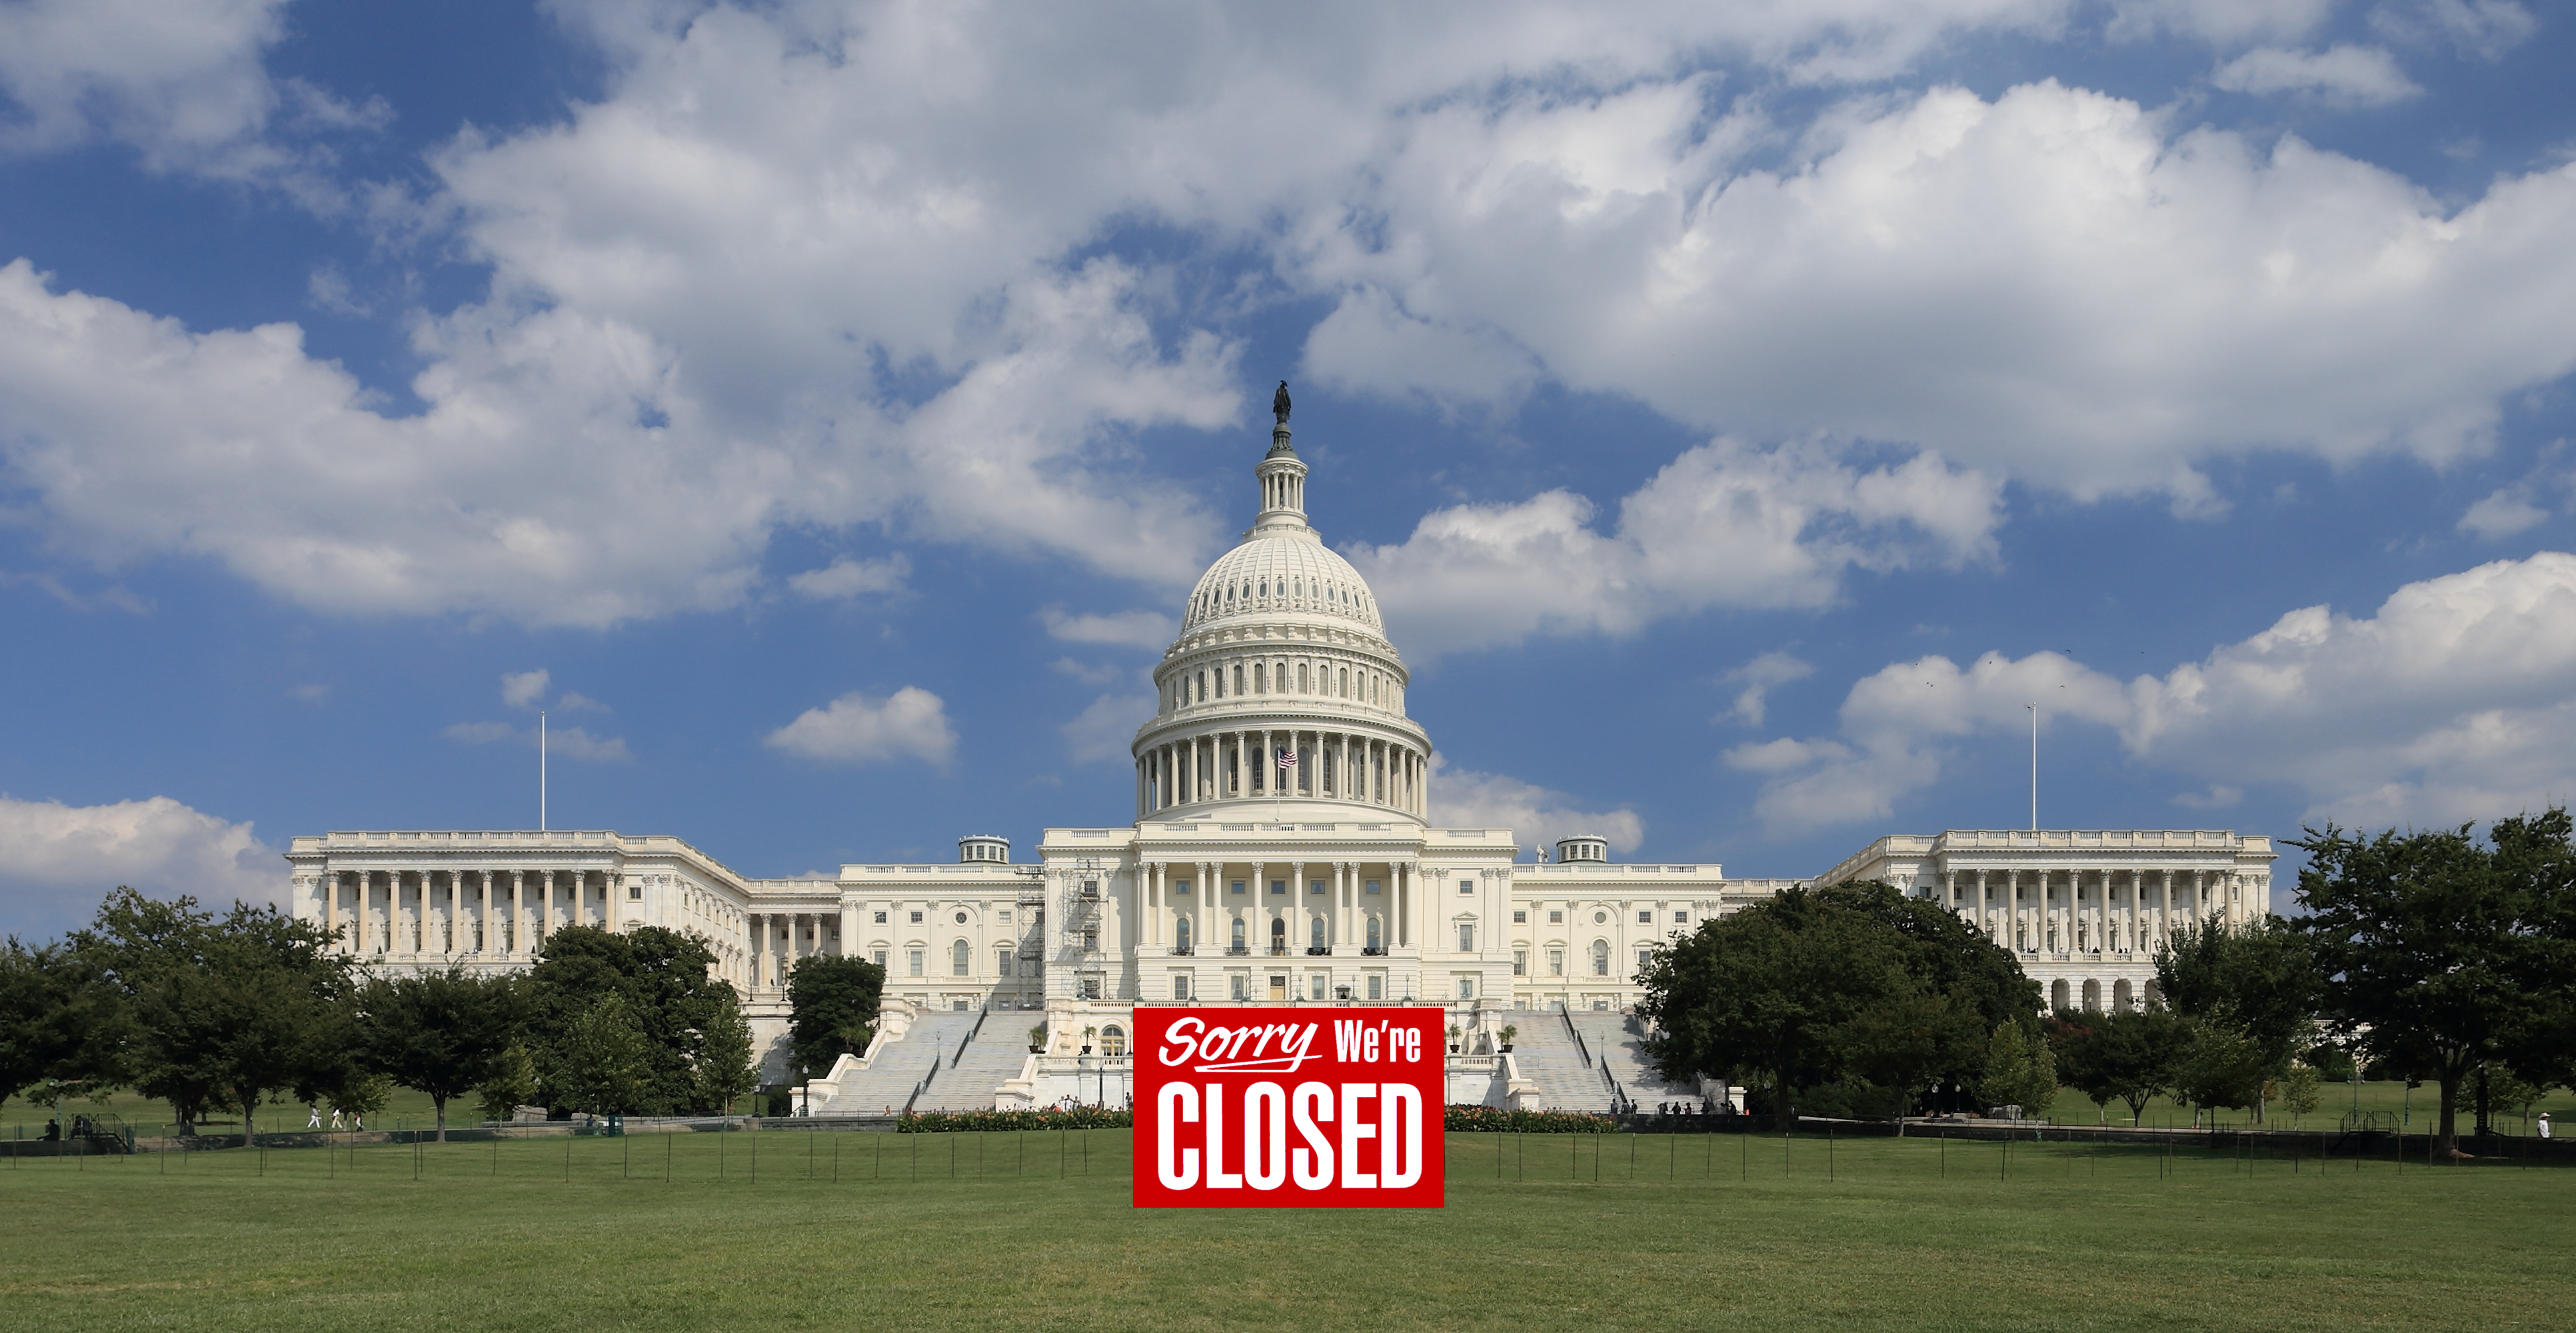 Capitol is closed